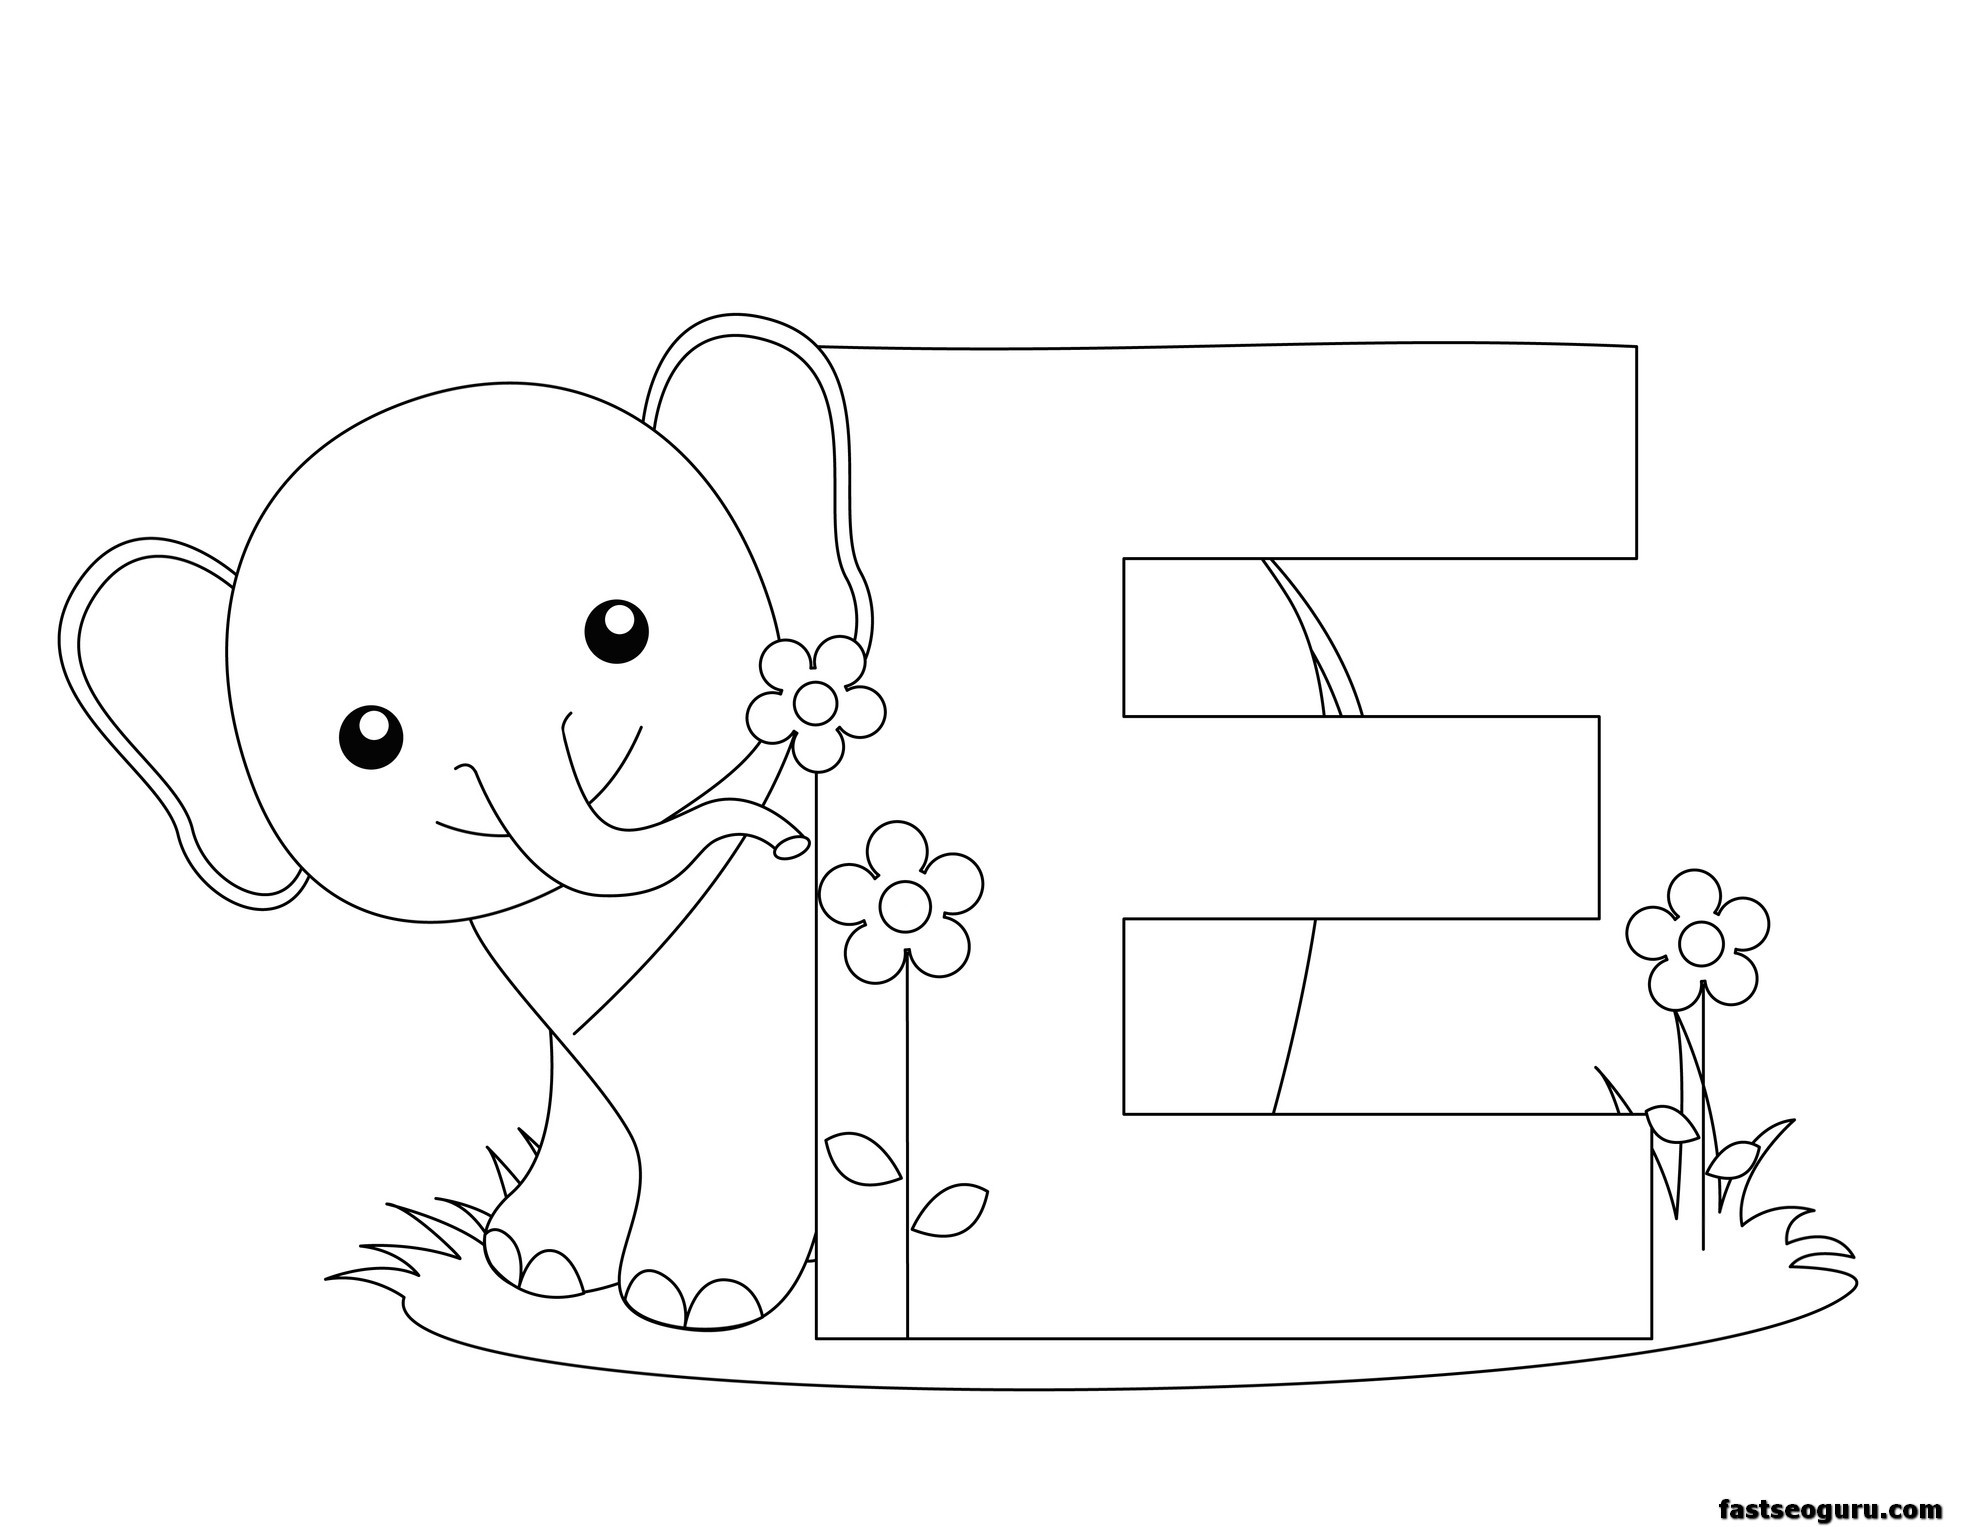 printable alphabet coloring pages animals | Printable Animal Alphabet Letter E for Elephant ...